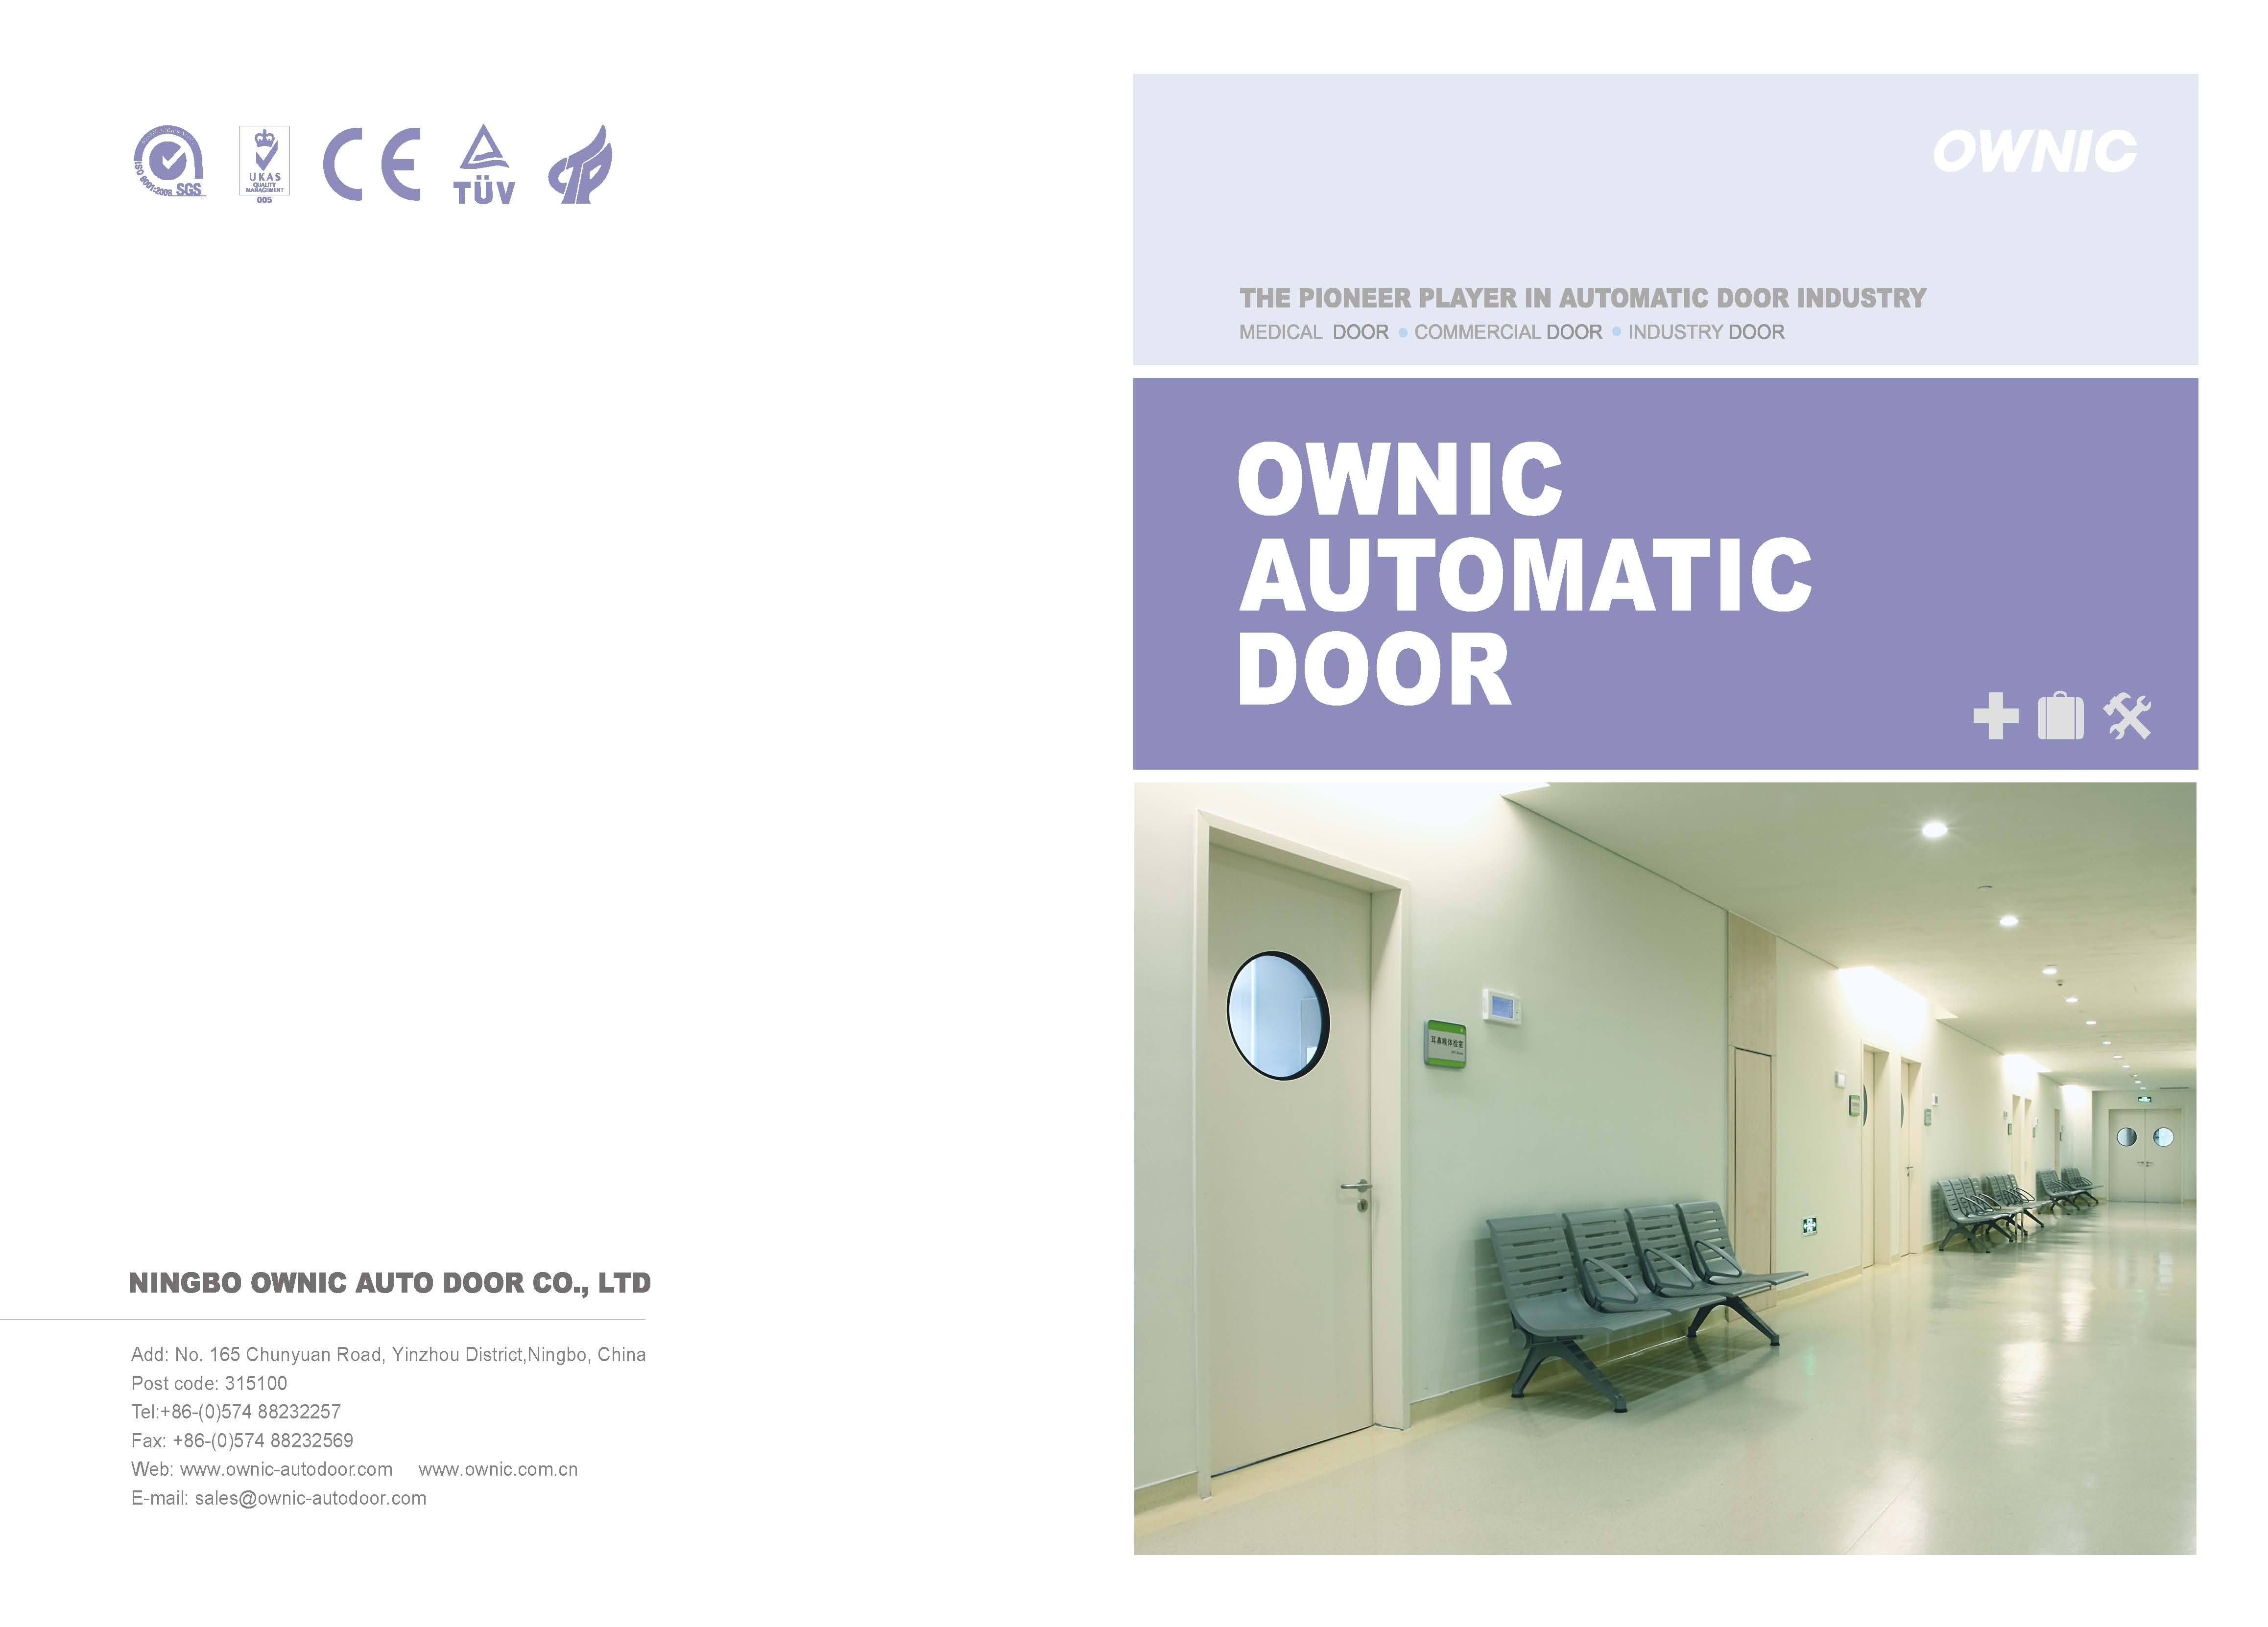 OWNIC Hospital Door Catalogue